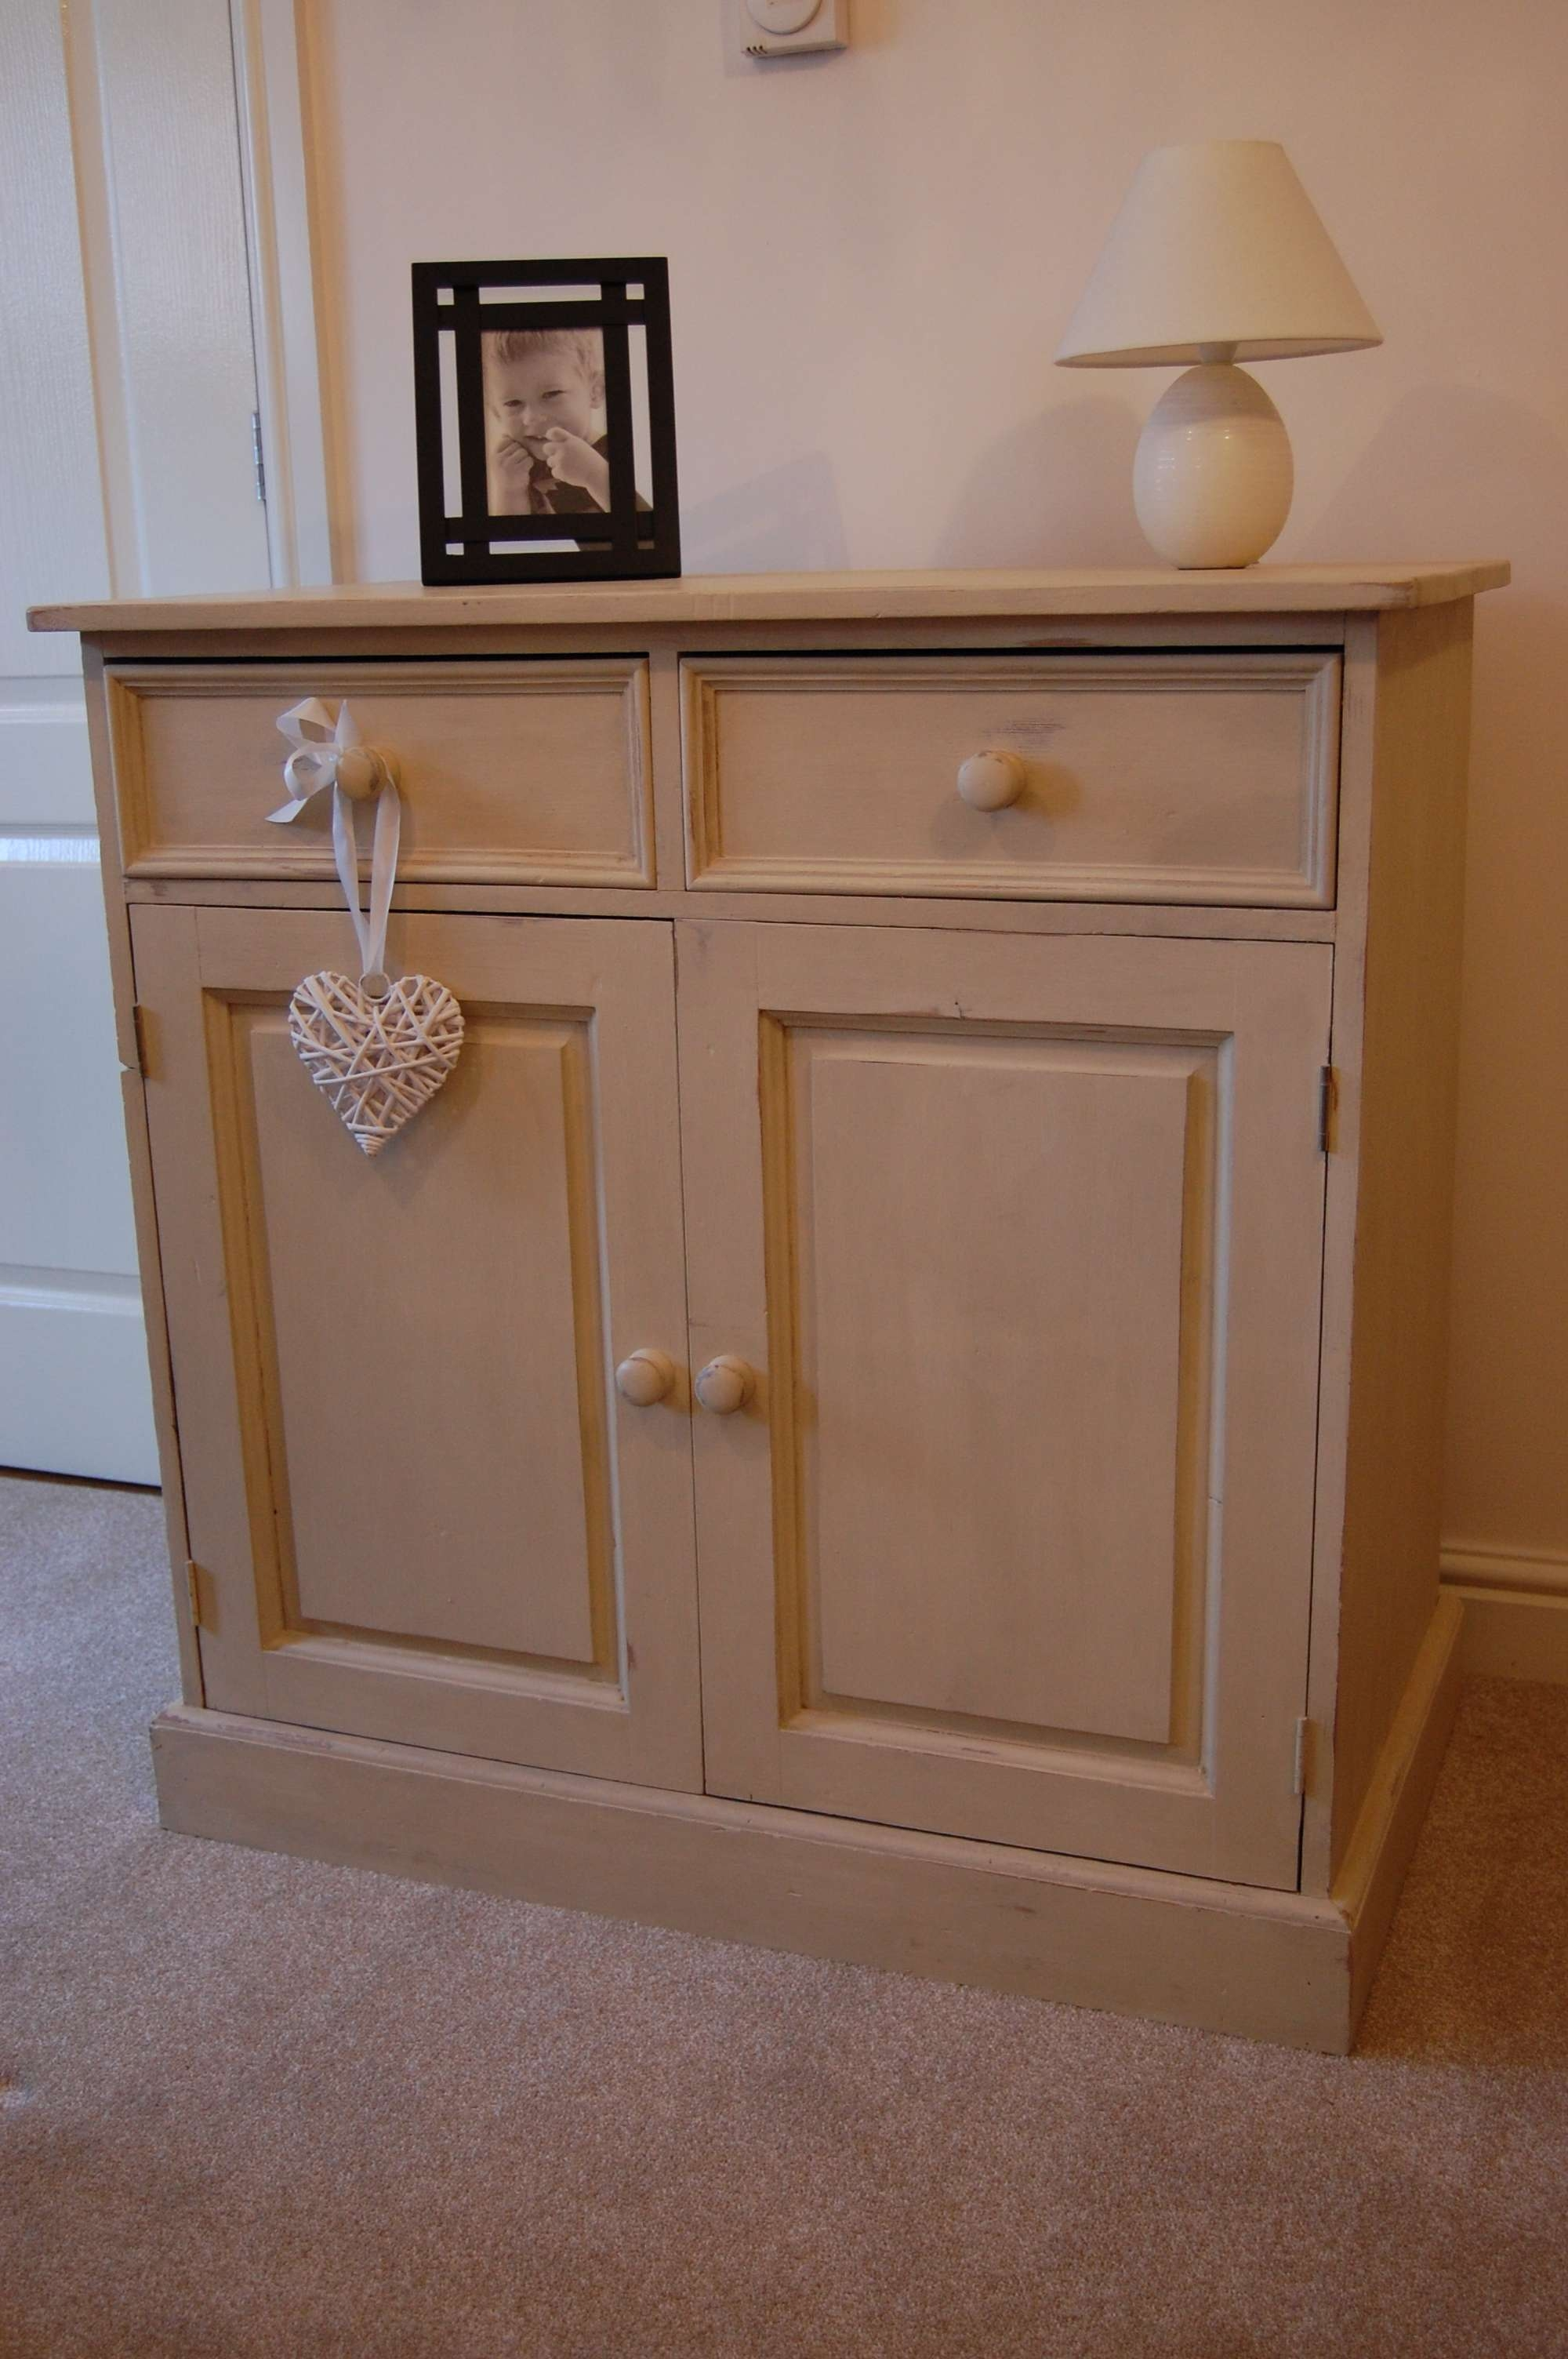 Shabby Chic Small Cream Sideboard, Plum Interior | With A Little Intended For Shabby Chic Sideboards (View 13 of 20)